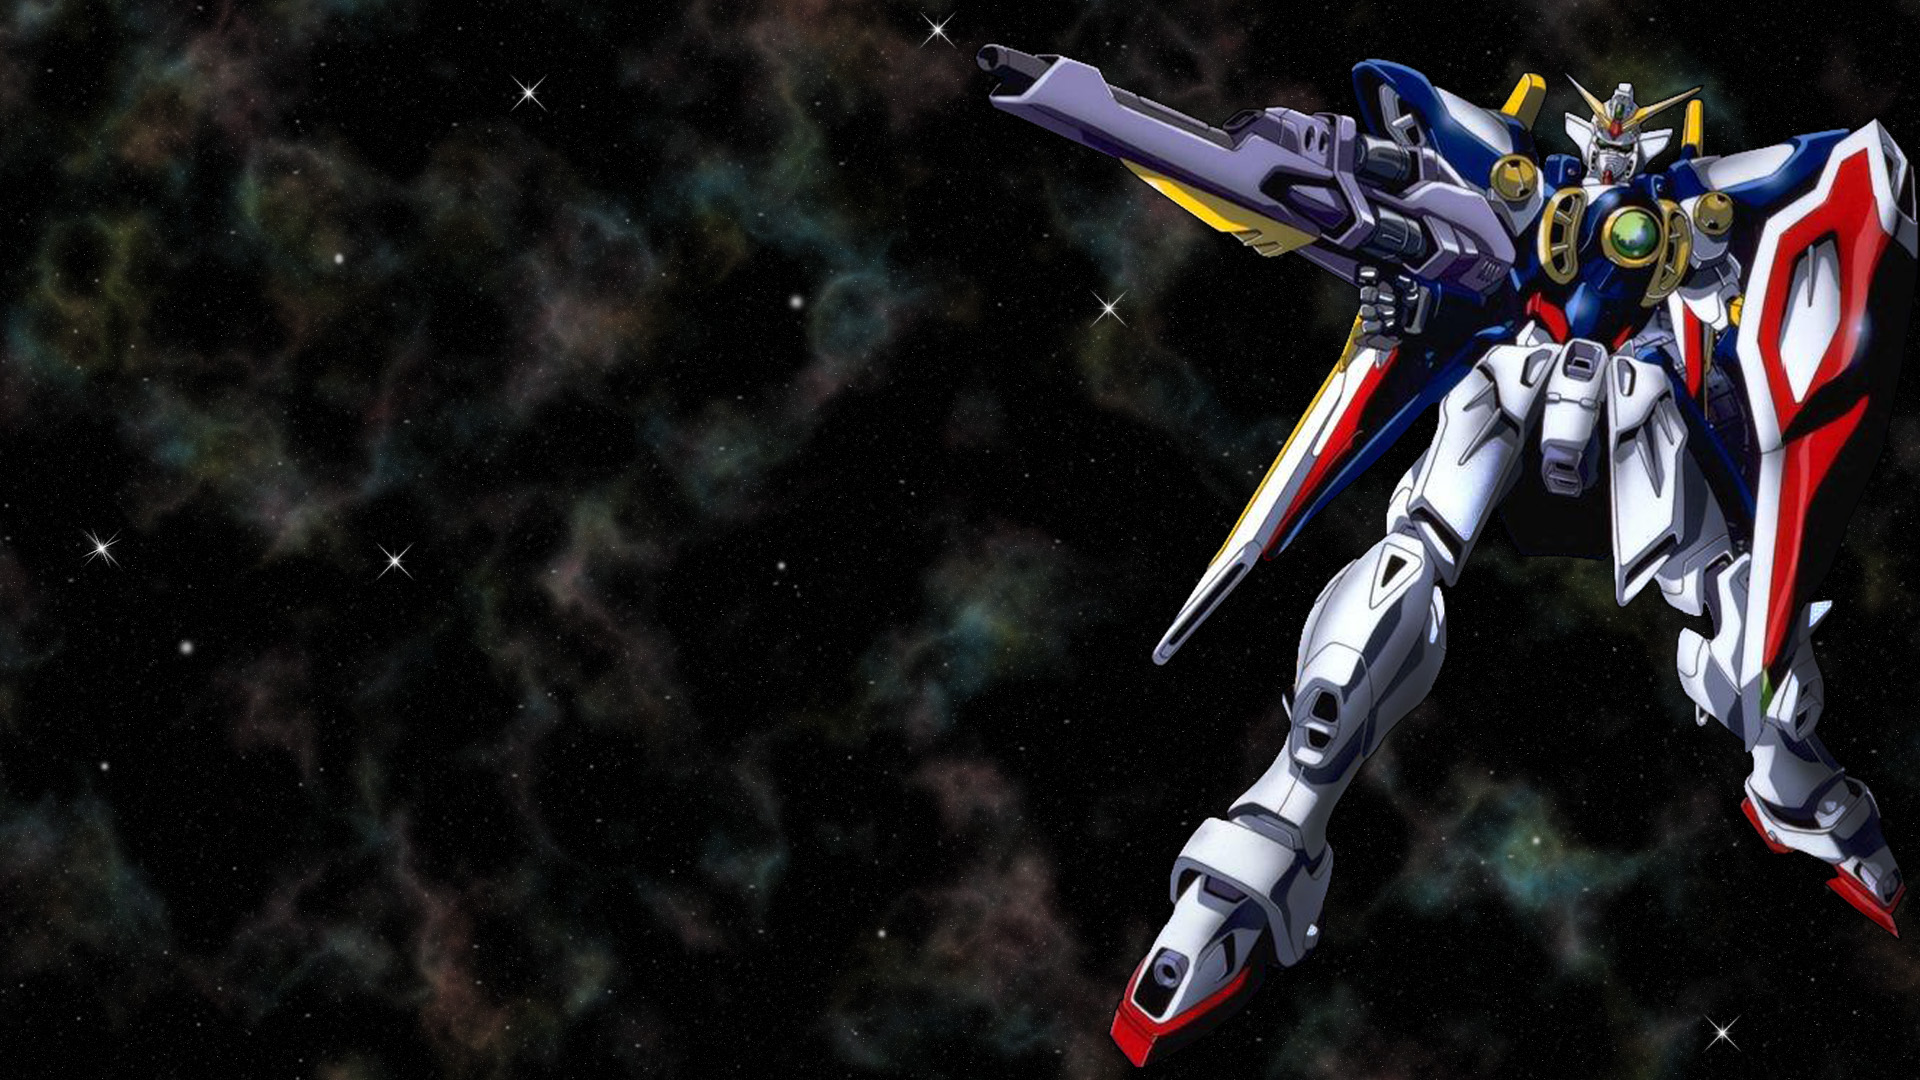 Mobile Suit Gundam Wing, Wallpaper | page 2 - Zerochan Anime Image